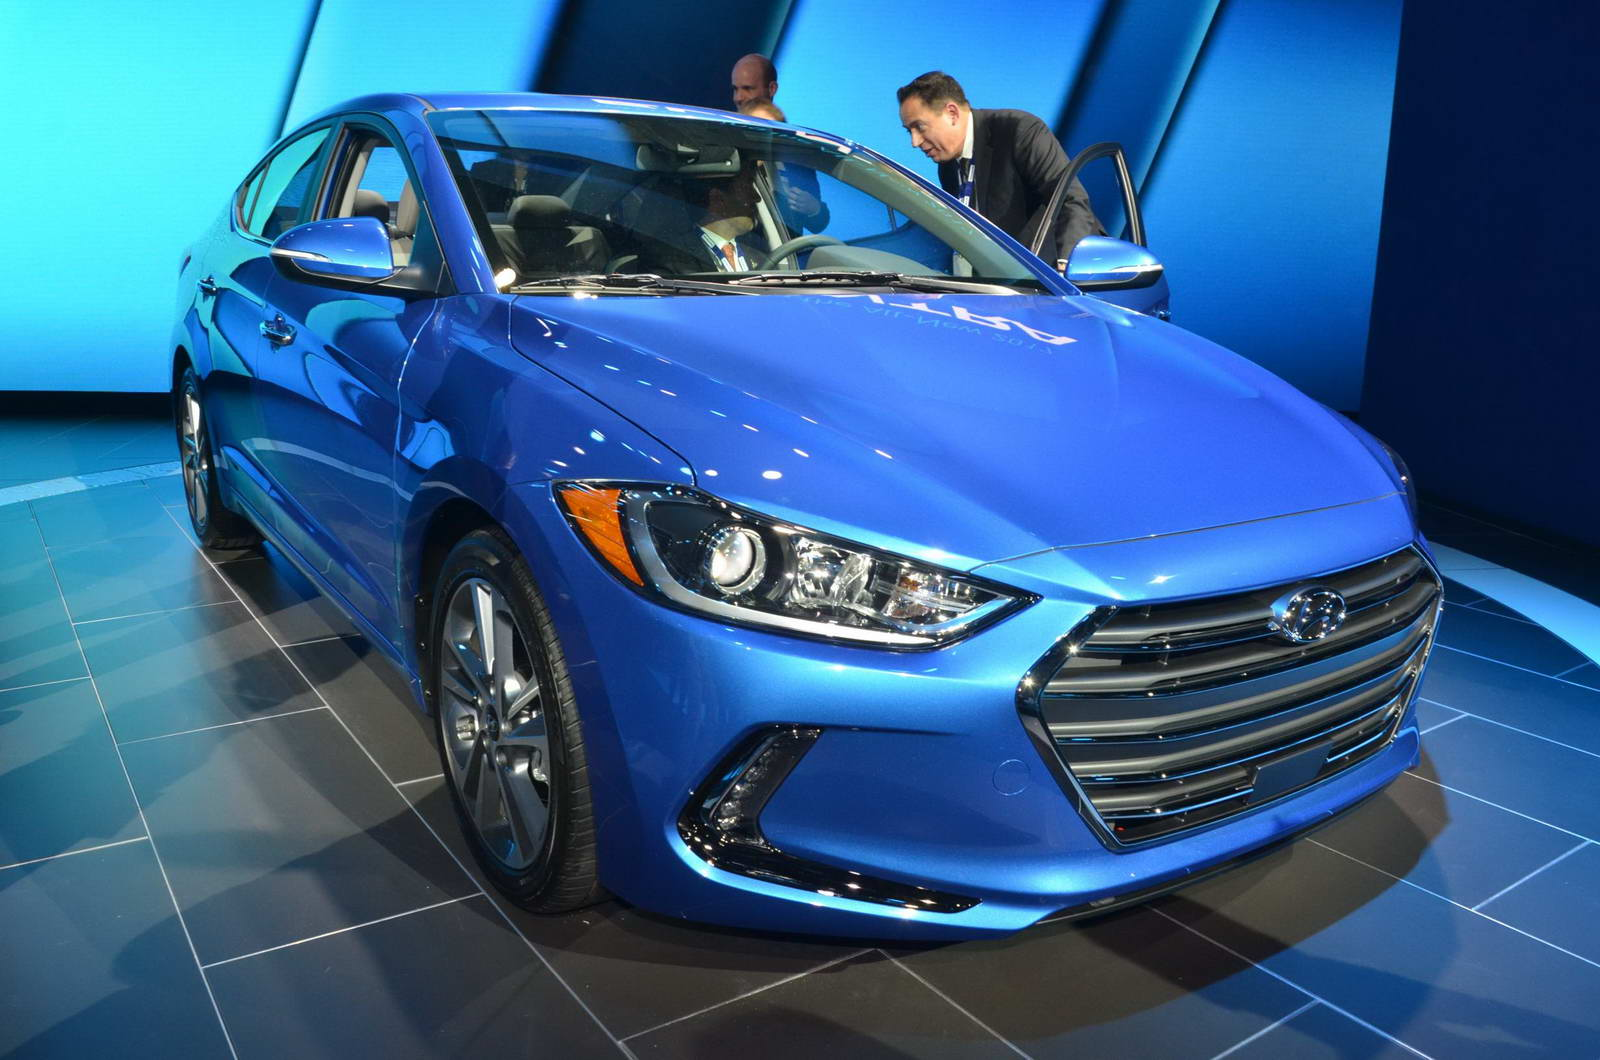 About That Car India The All New Hyundai Elantra